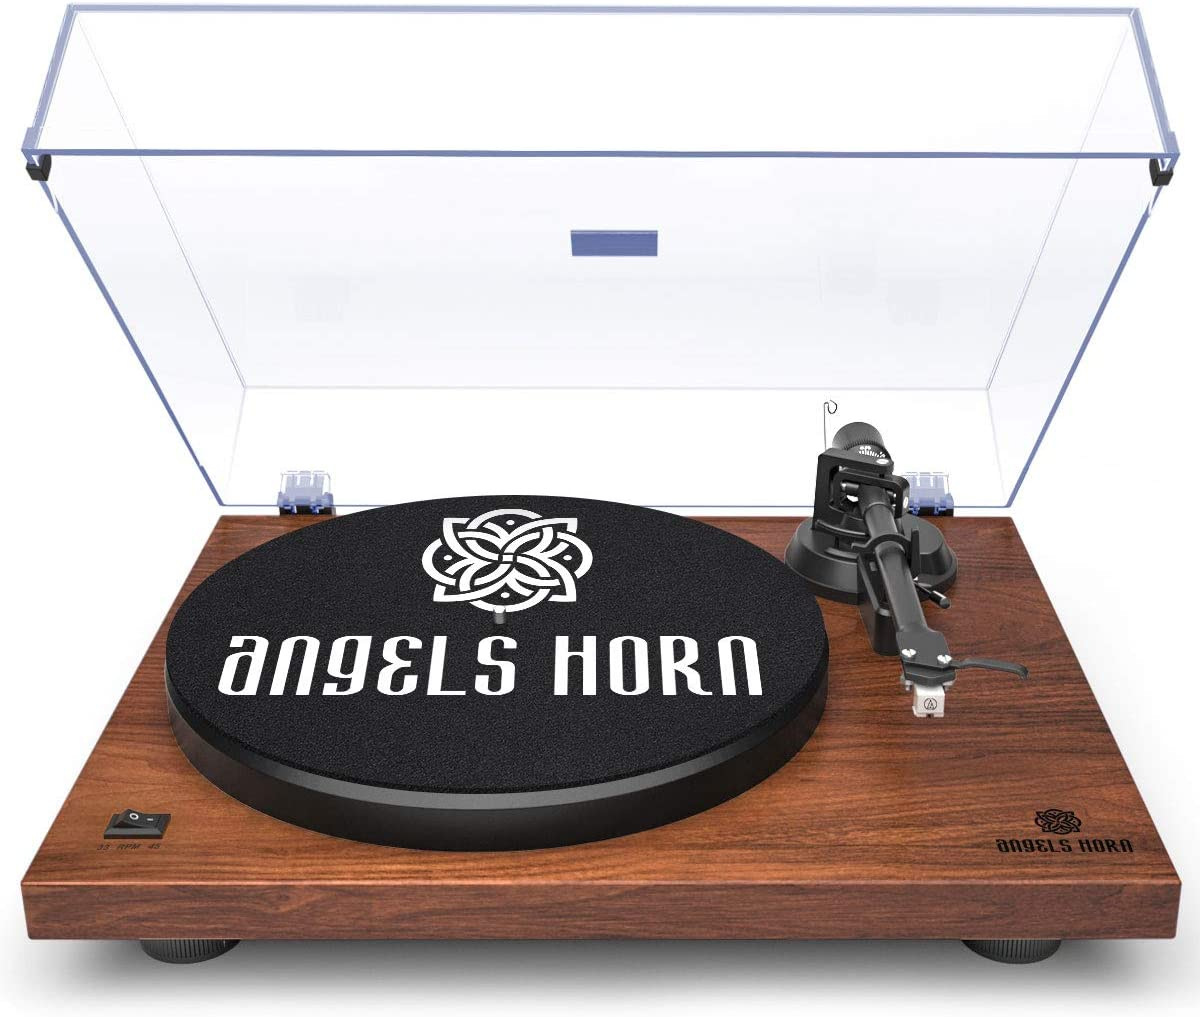 ANGELS HORN Turntable, Vinyl Record Player, Built-in Phono Preamp, Belt Drive 2-Speed, Adjustable Counterweight, AT-3600L (Walnut Wood)